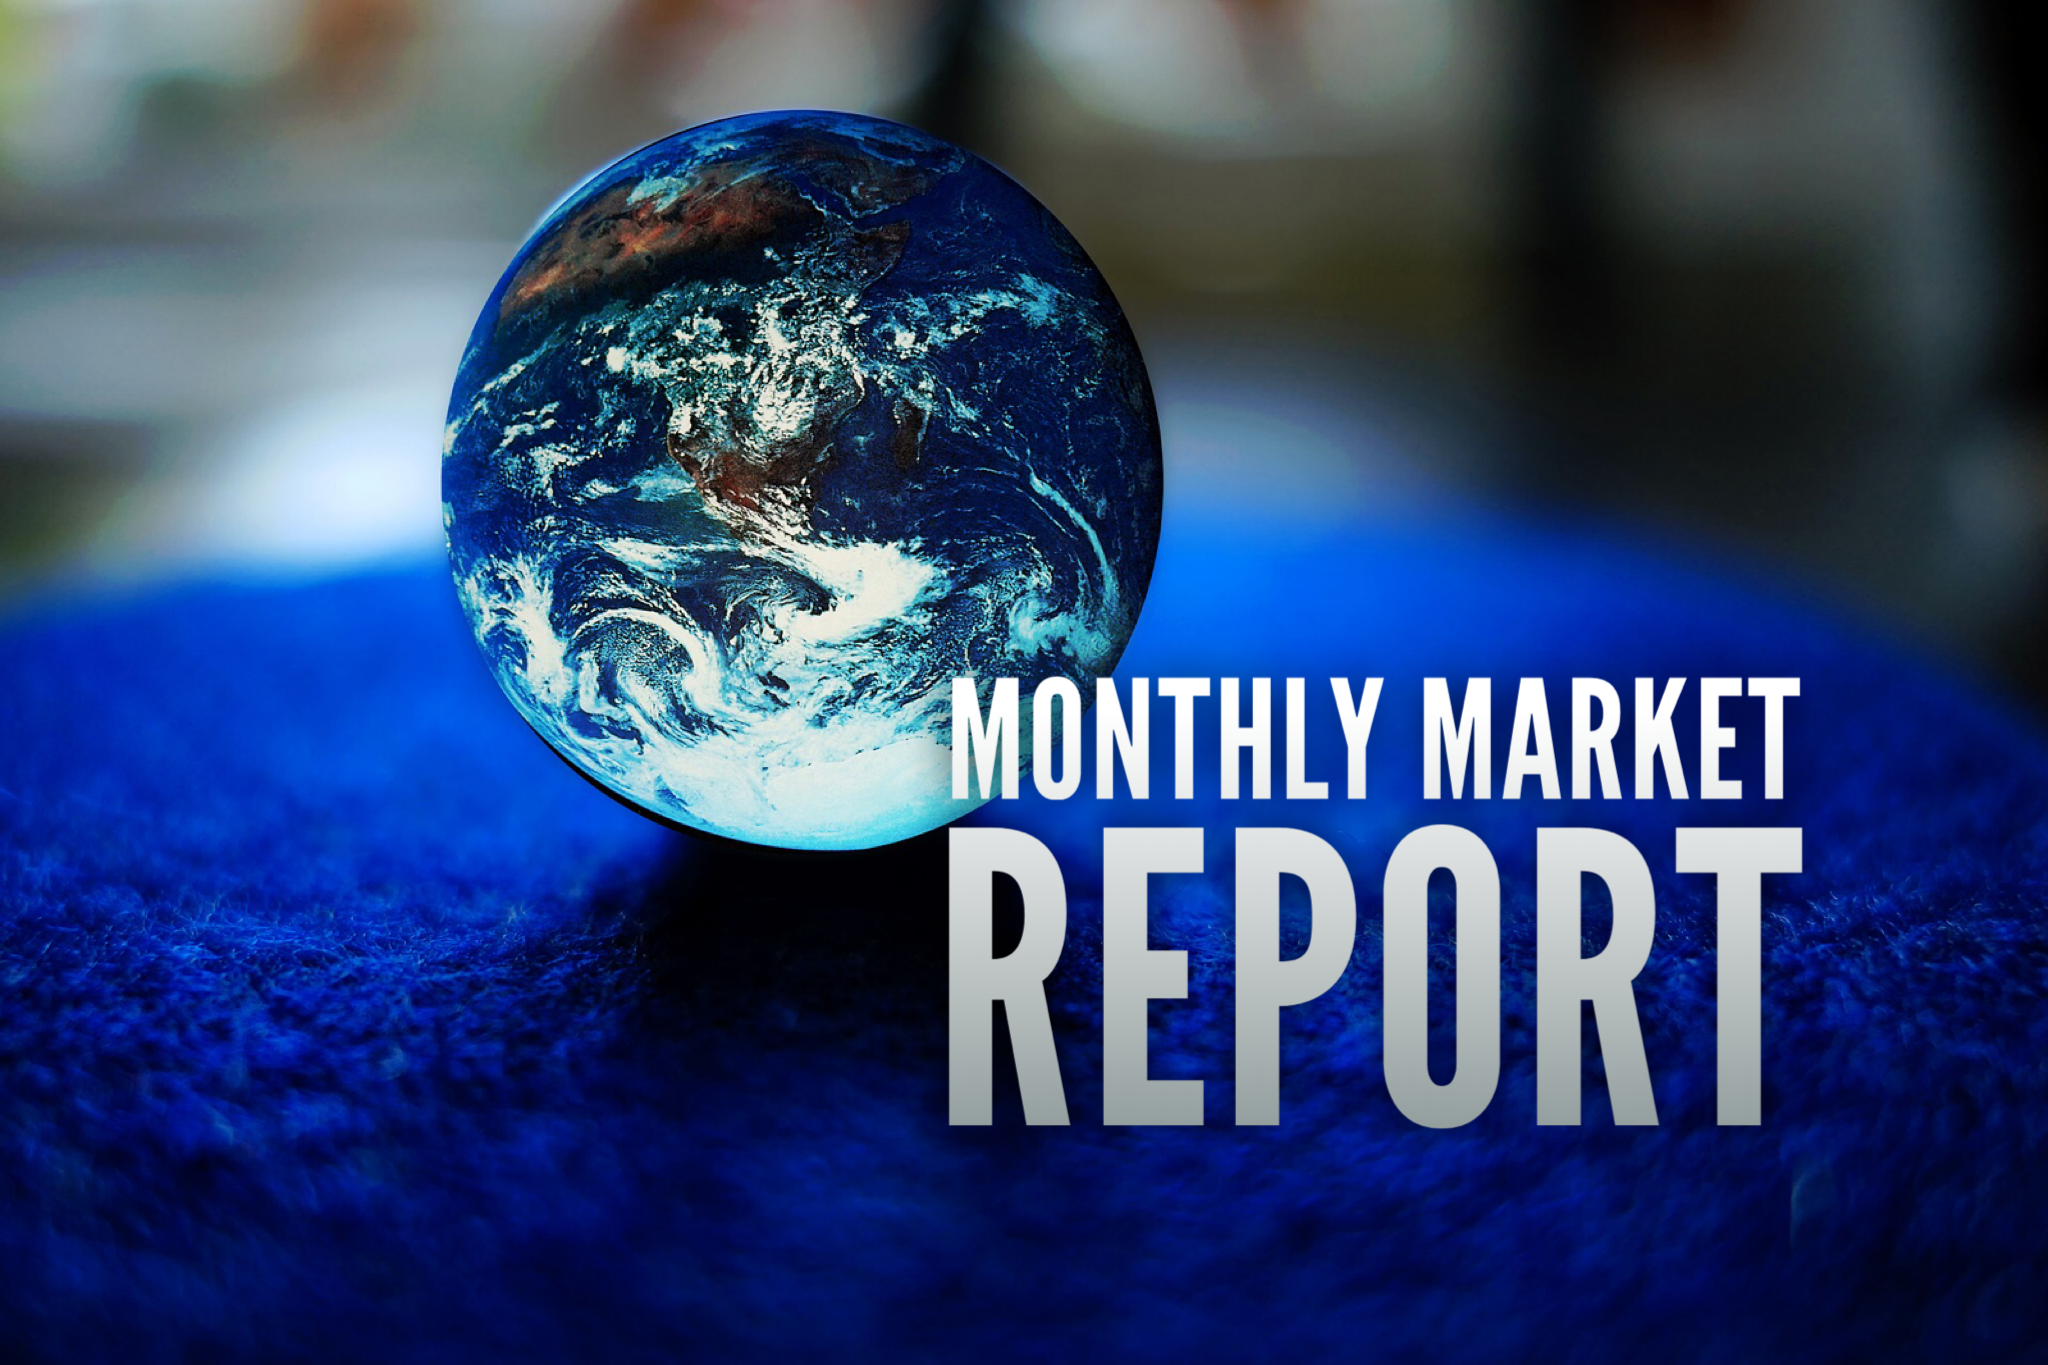 MONTHLY MARKET REPORT: JANUARY 2020